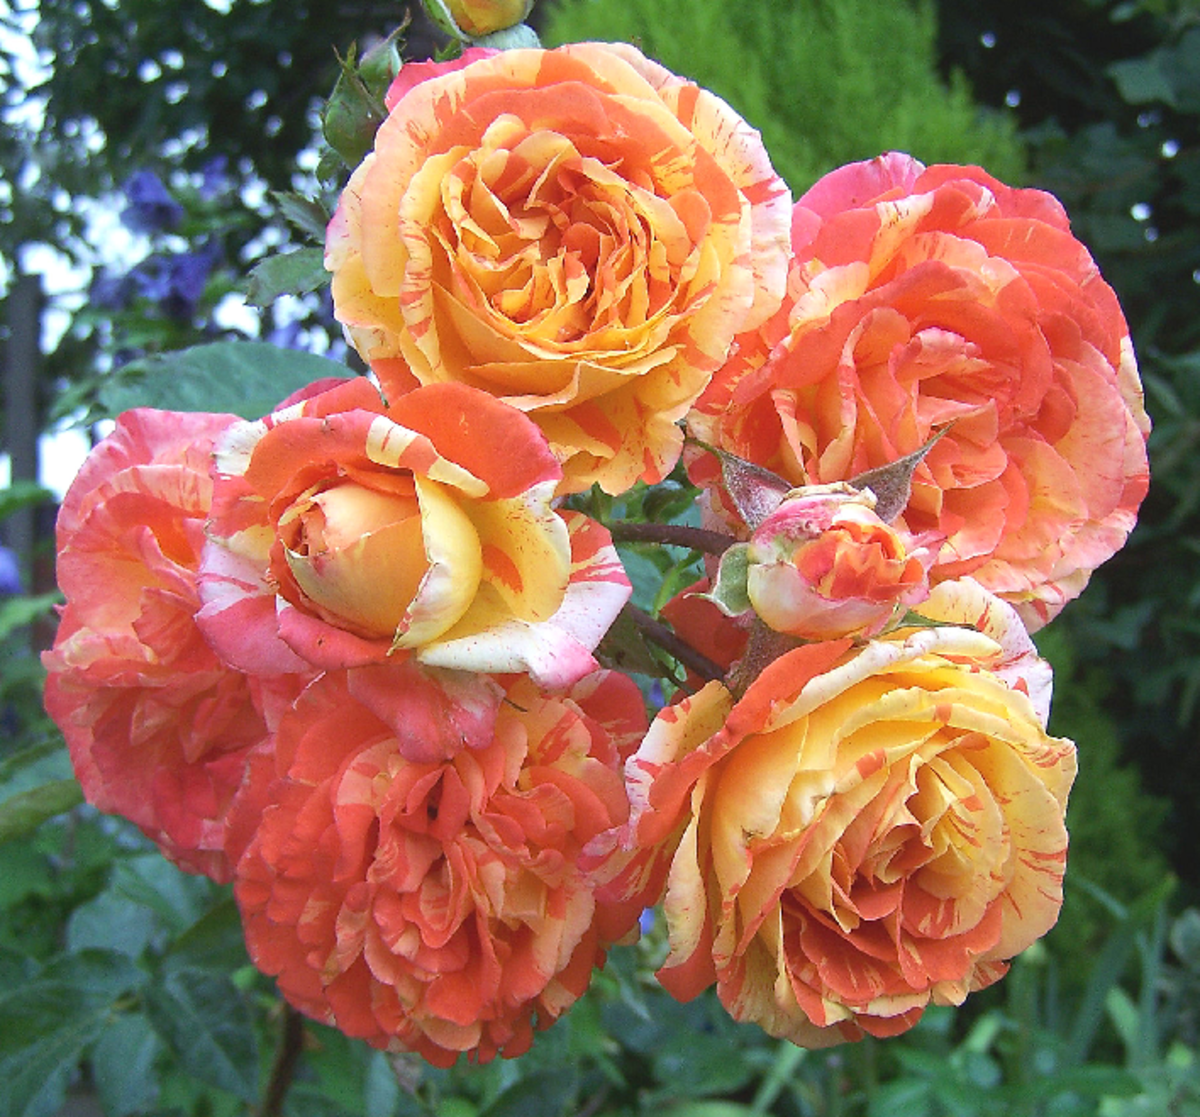 Orange and Yellow Roses Cluster Image